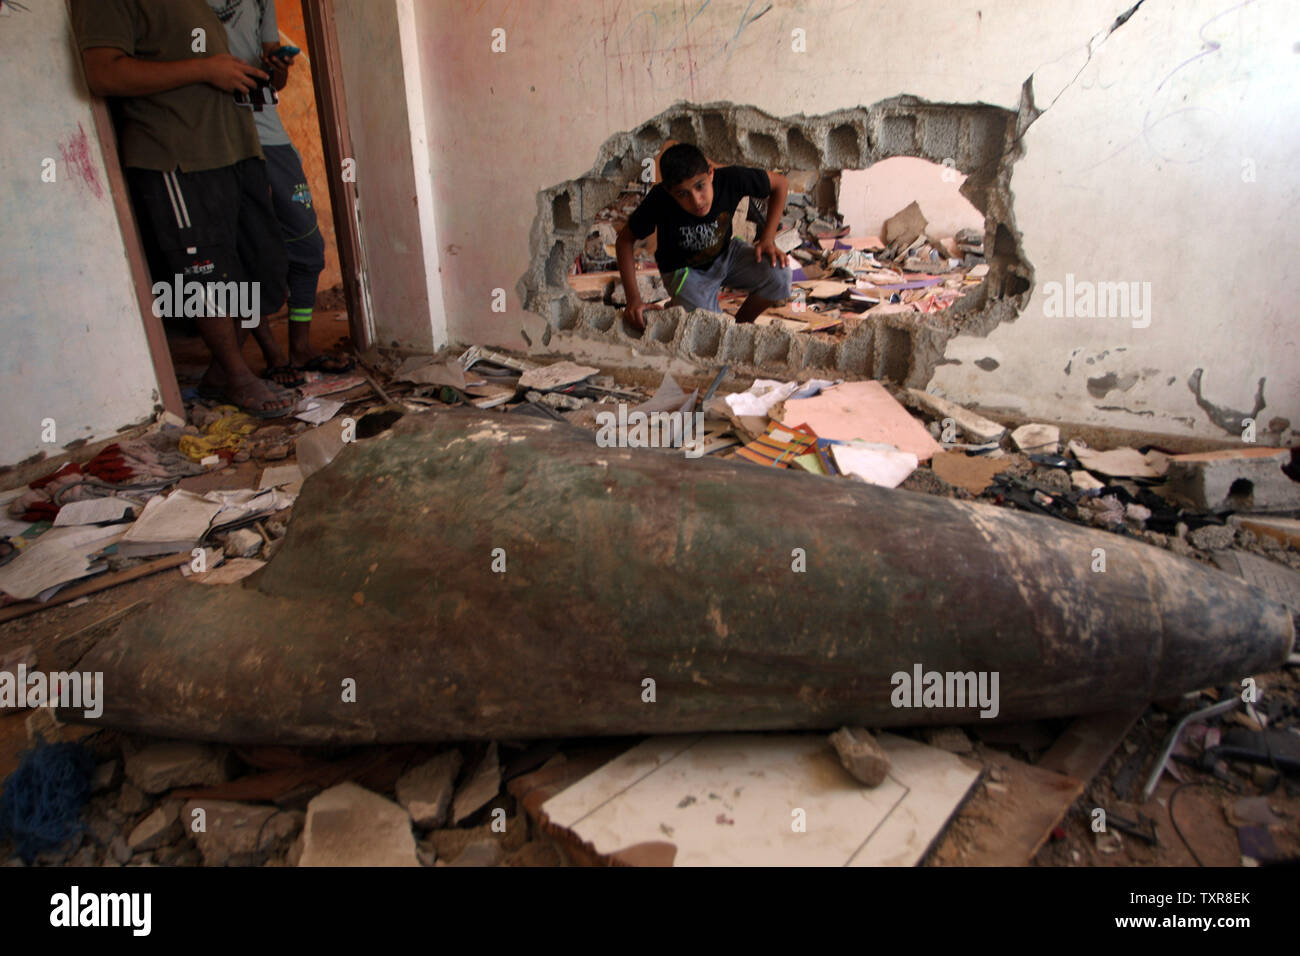 A Palestinian boy looks at a missile which witnesses said was fired by Israeli aircraft, in his flat in the destroyed Nada Towers During Cease-Fire between Gaza and Israel,  in the town of Beit Lahiya, northern Gaza Strip, August. 12, 2014. UPI/Ismael Mohamad Stock Photo